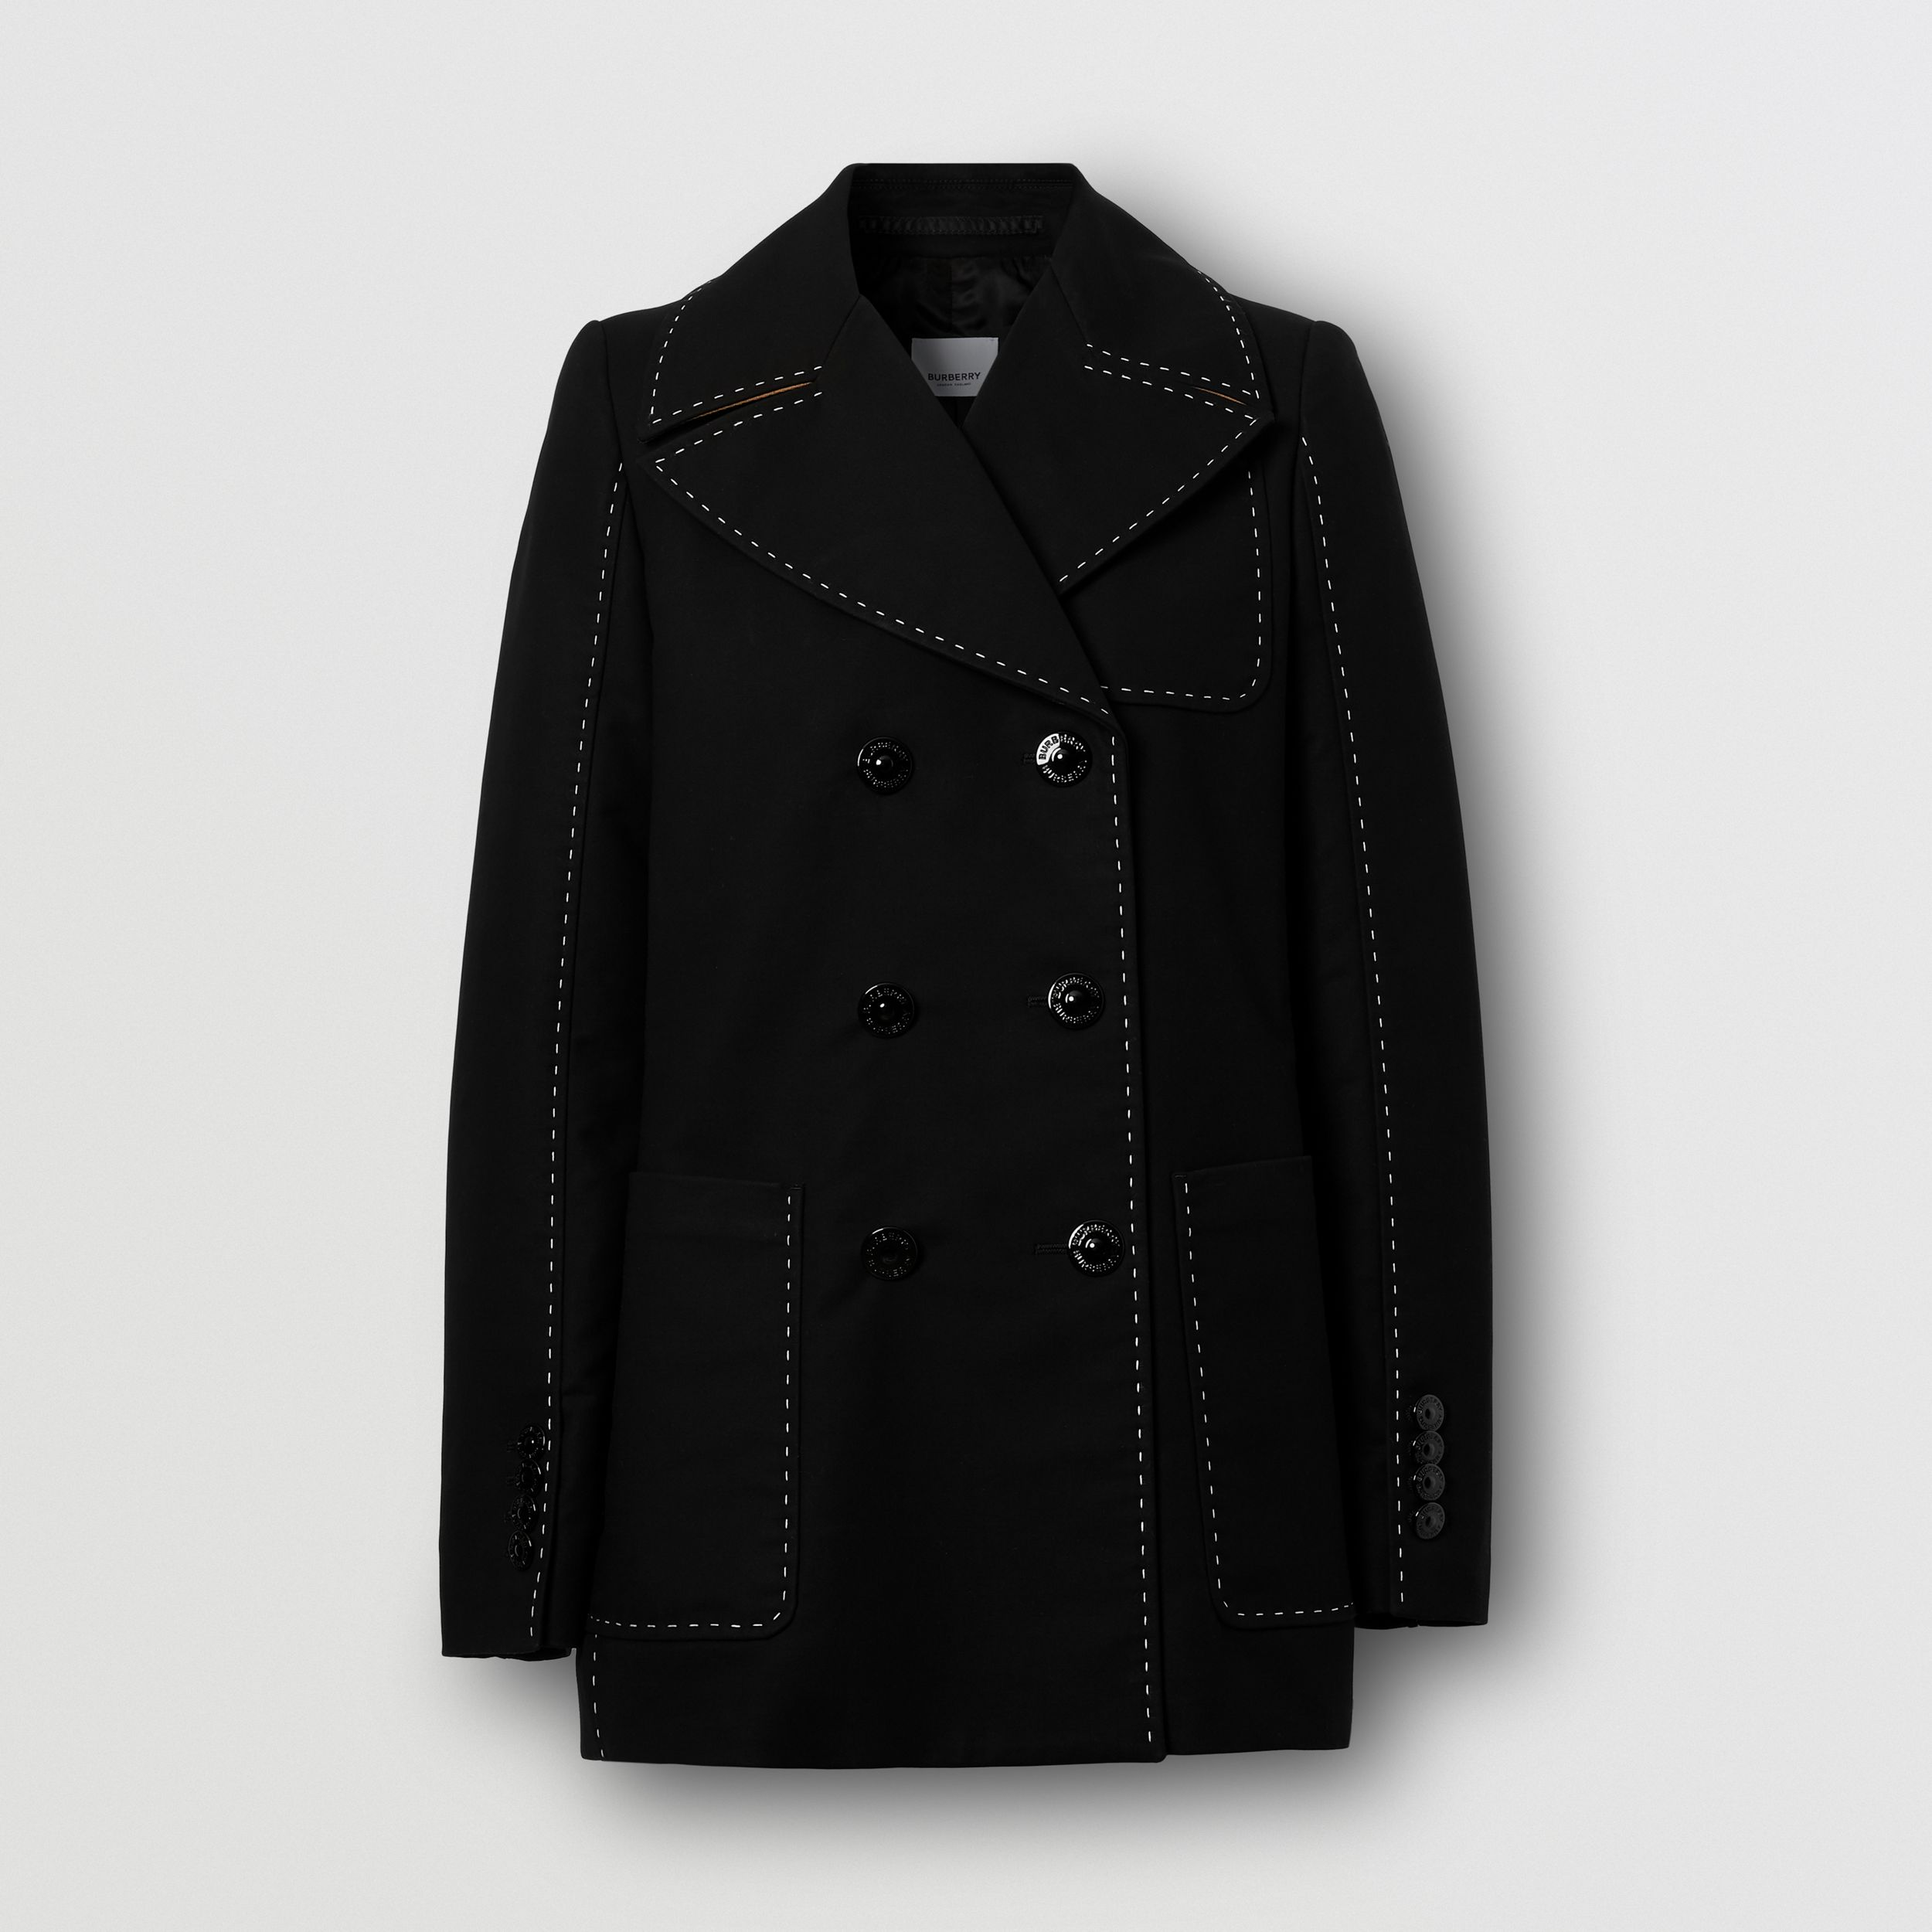 Topstitched Cotton Pea Coat in Black - Women | Burberry - 4